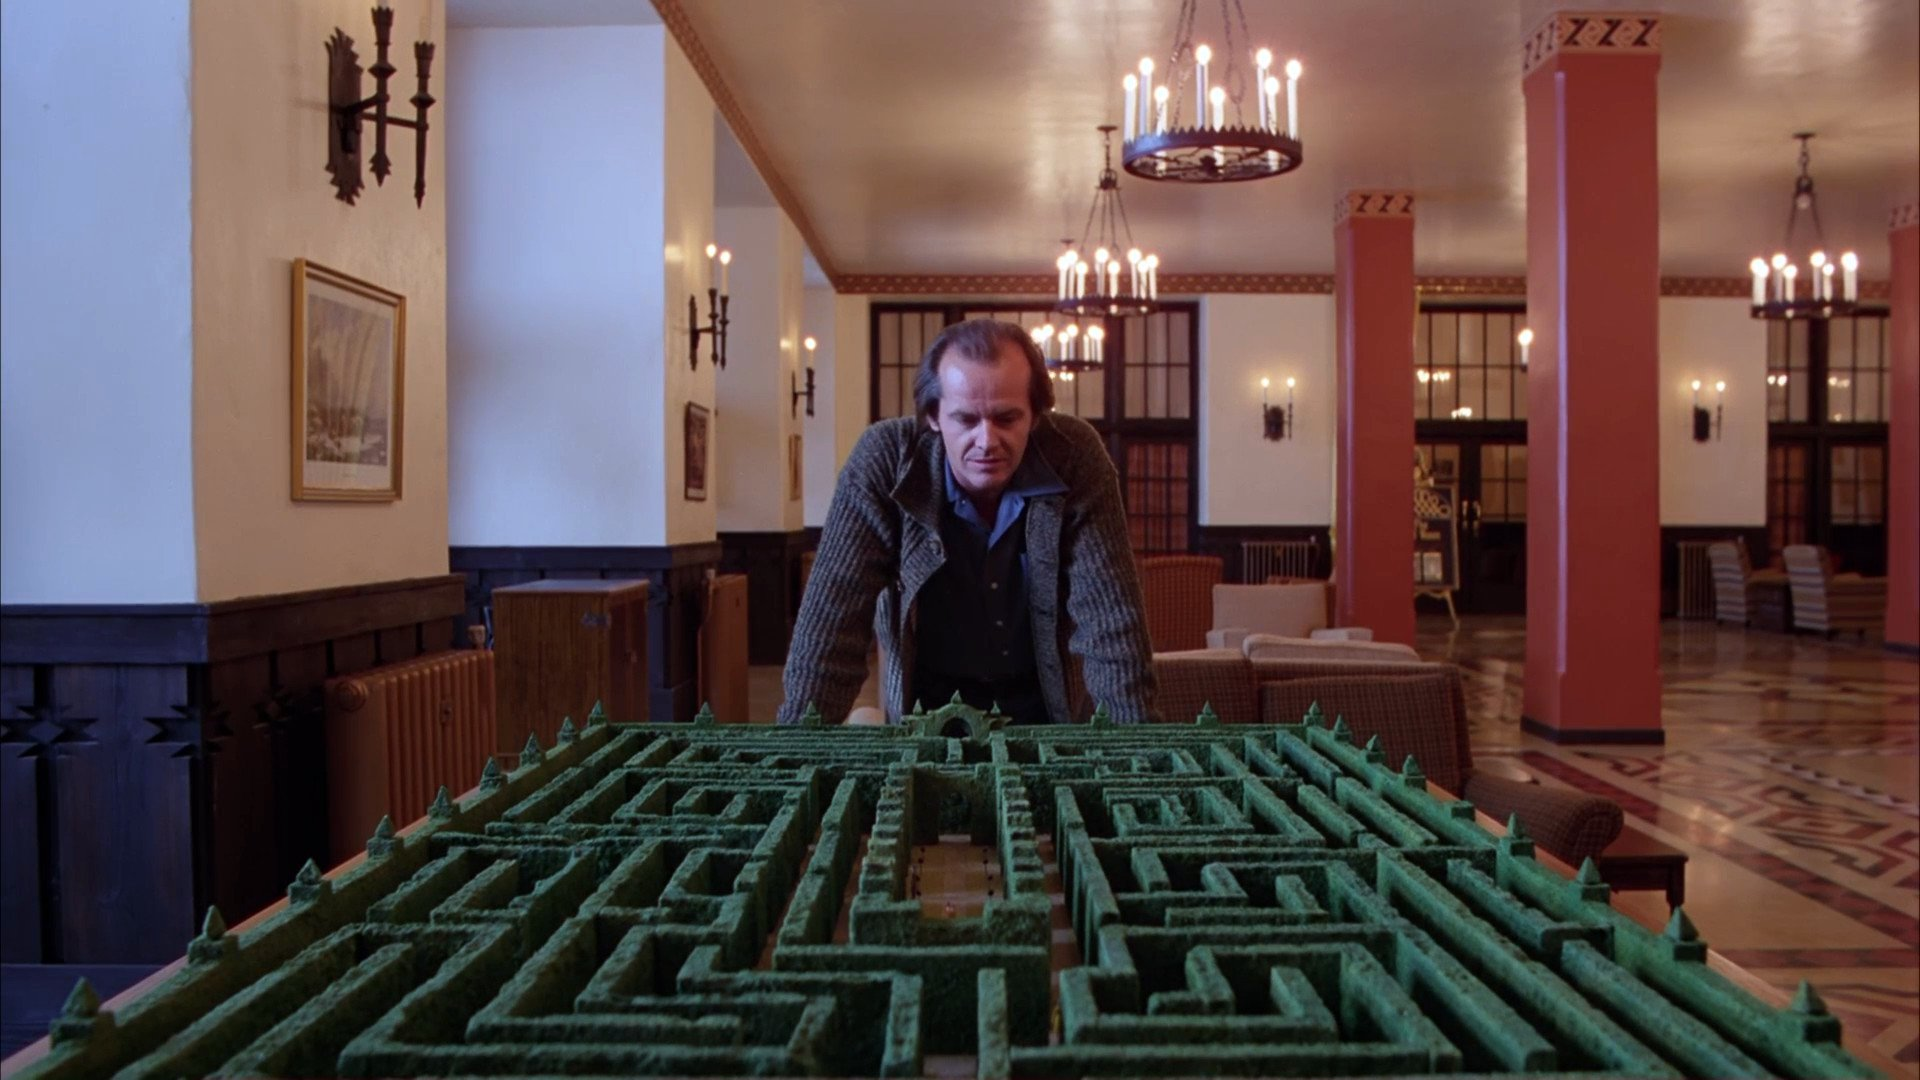 'Stanley Kubrick's Boxes': Watch Jon Ronson's 2008 Documentary About the Master Filmmaker's Style